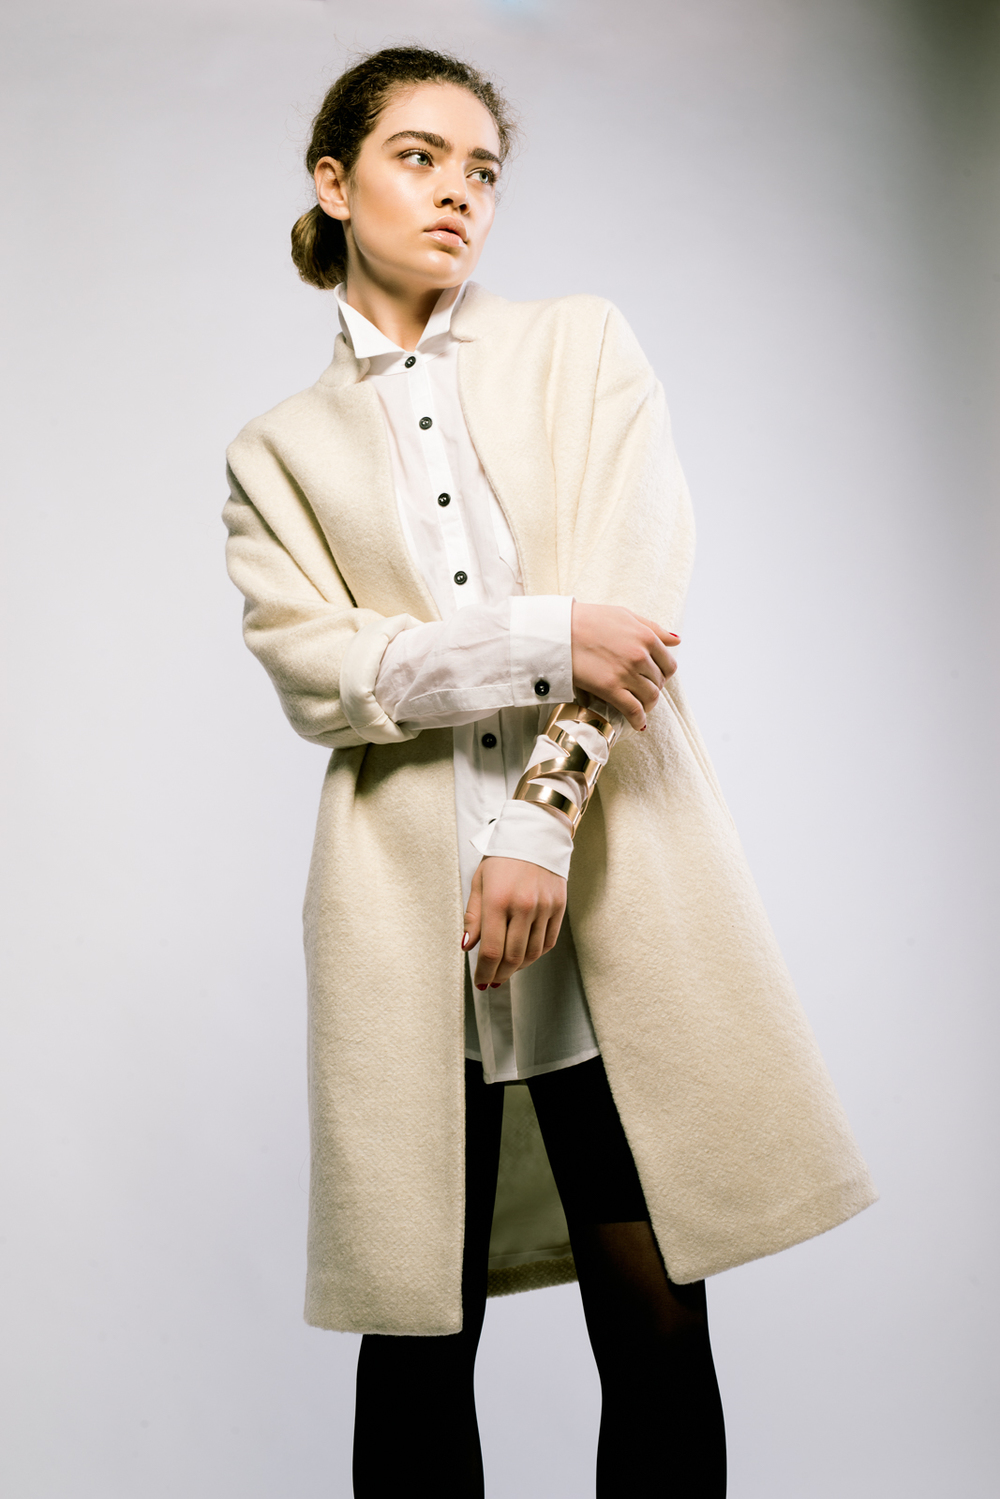 On model:  Sir & Madame Woven Shirt in white , vintage coat and bracelet.